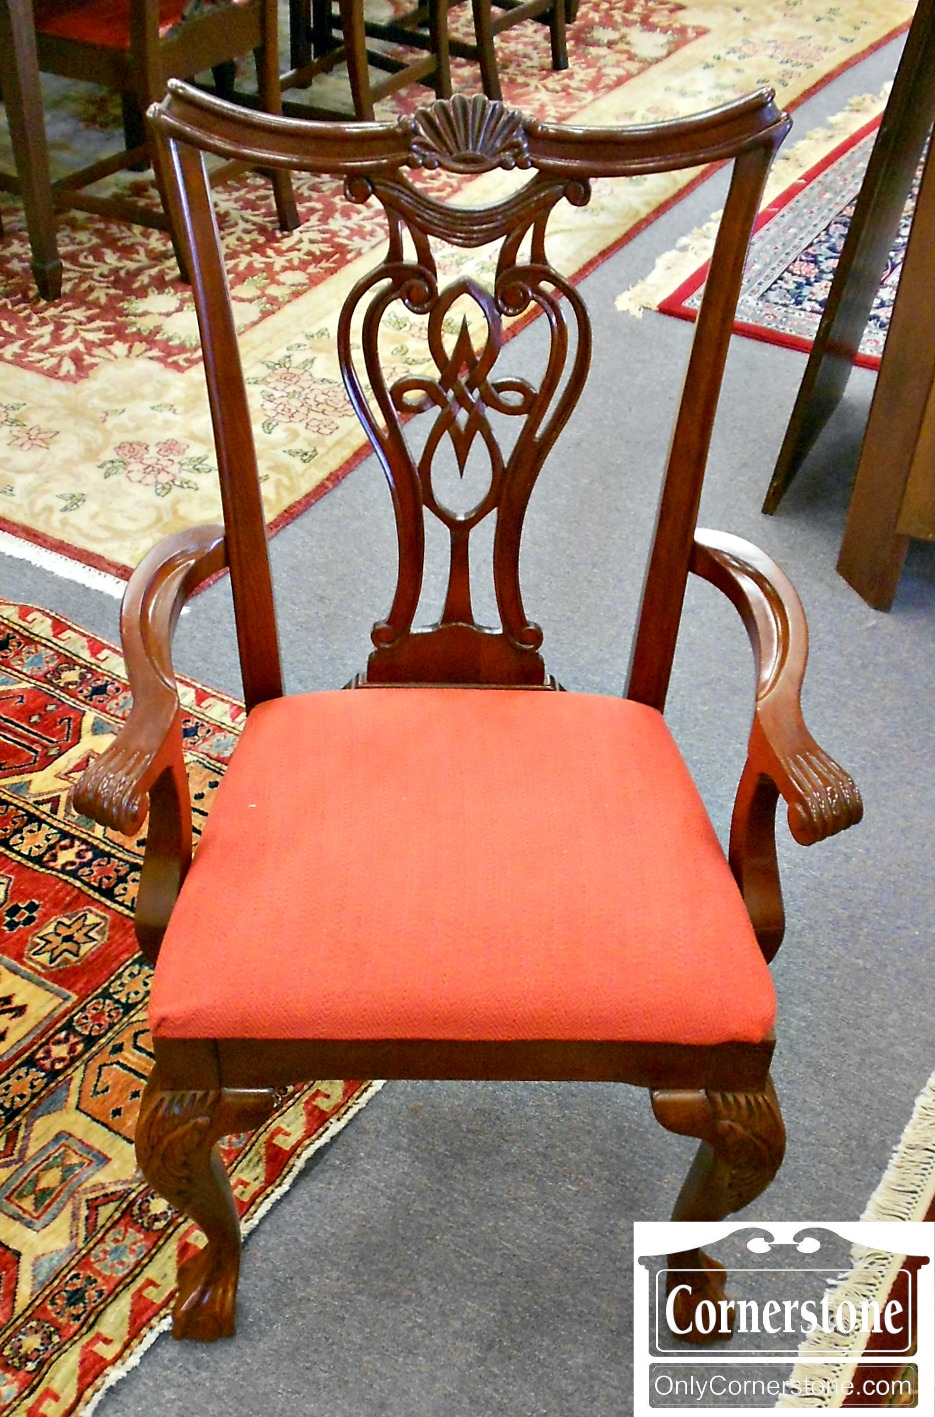 5670-633 Set of 8 Pennsylvania House Cherry Chippendale Chairs